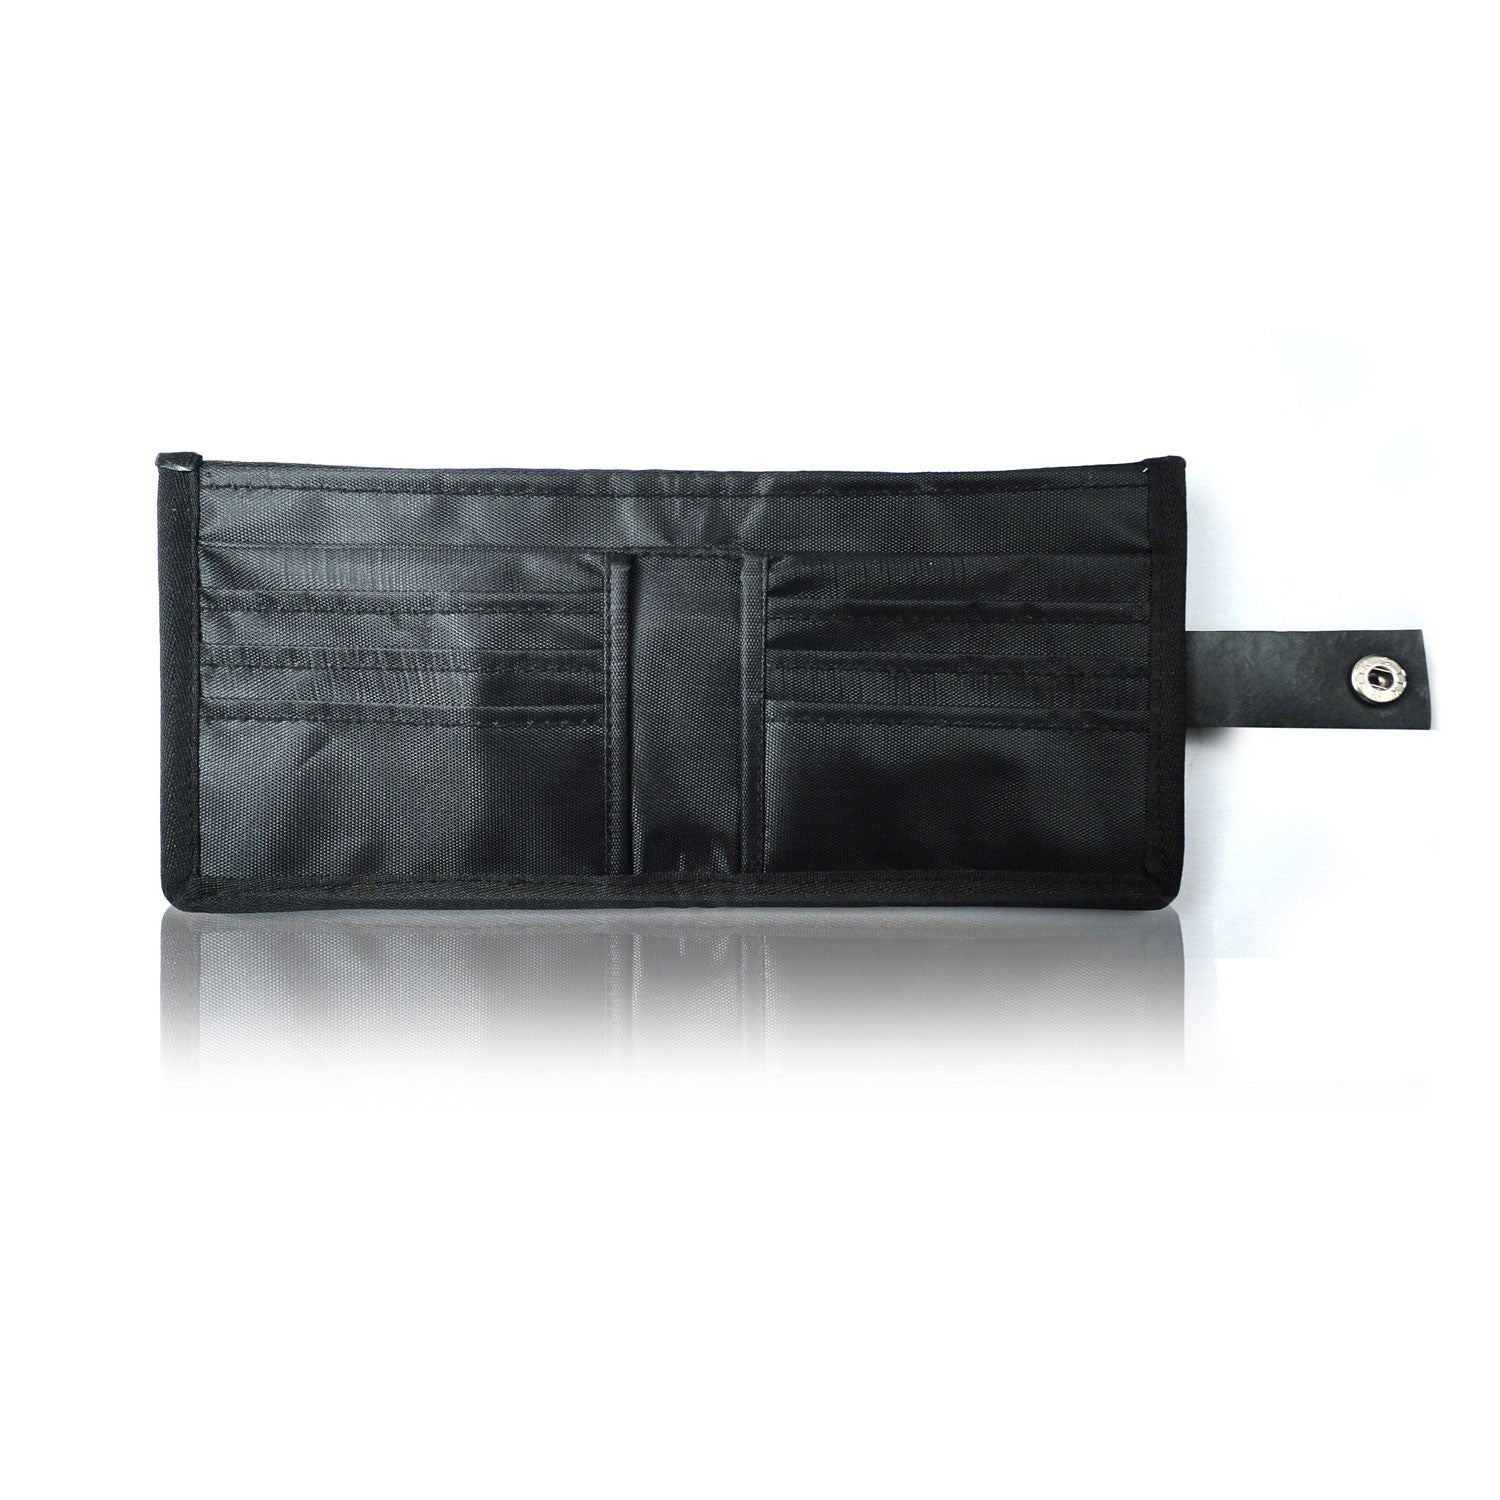 """Black-Buck""-Men's Wallet - Green The Map :: Buy Online Eco Friendly Products - Upycled, Organic, Vegan, Handmade, Fair Trade, Green Products From India"